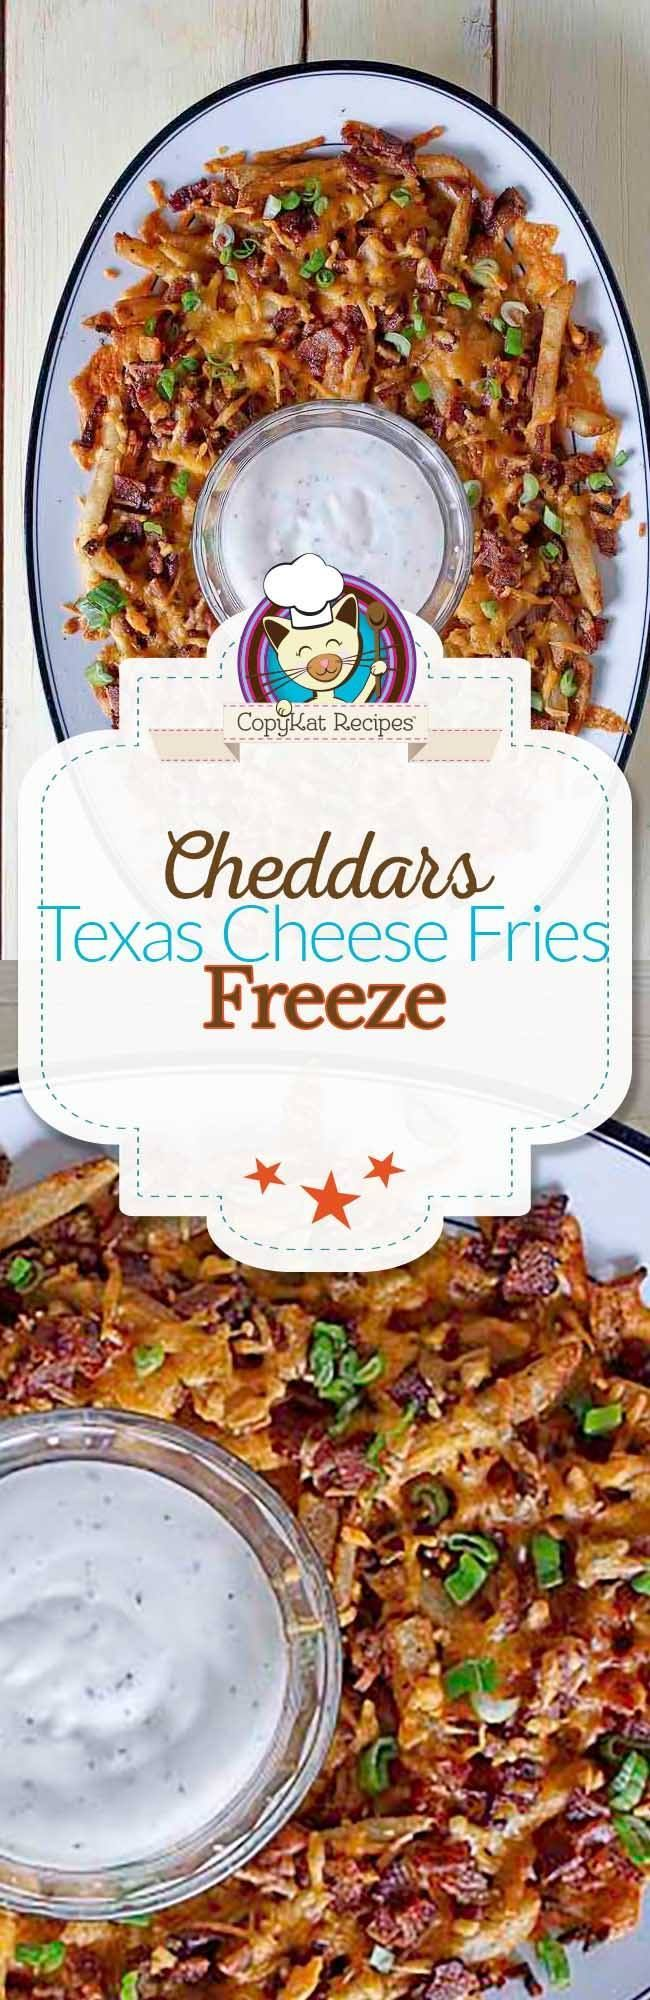 You can recreate Cheddar's Texas Cheese Fries at home with this easy copycat recipe.